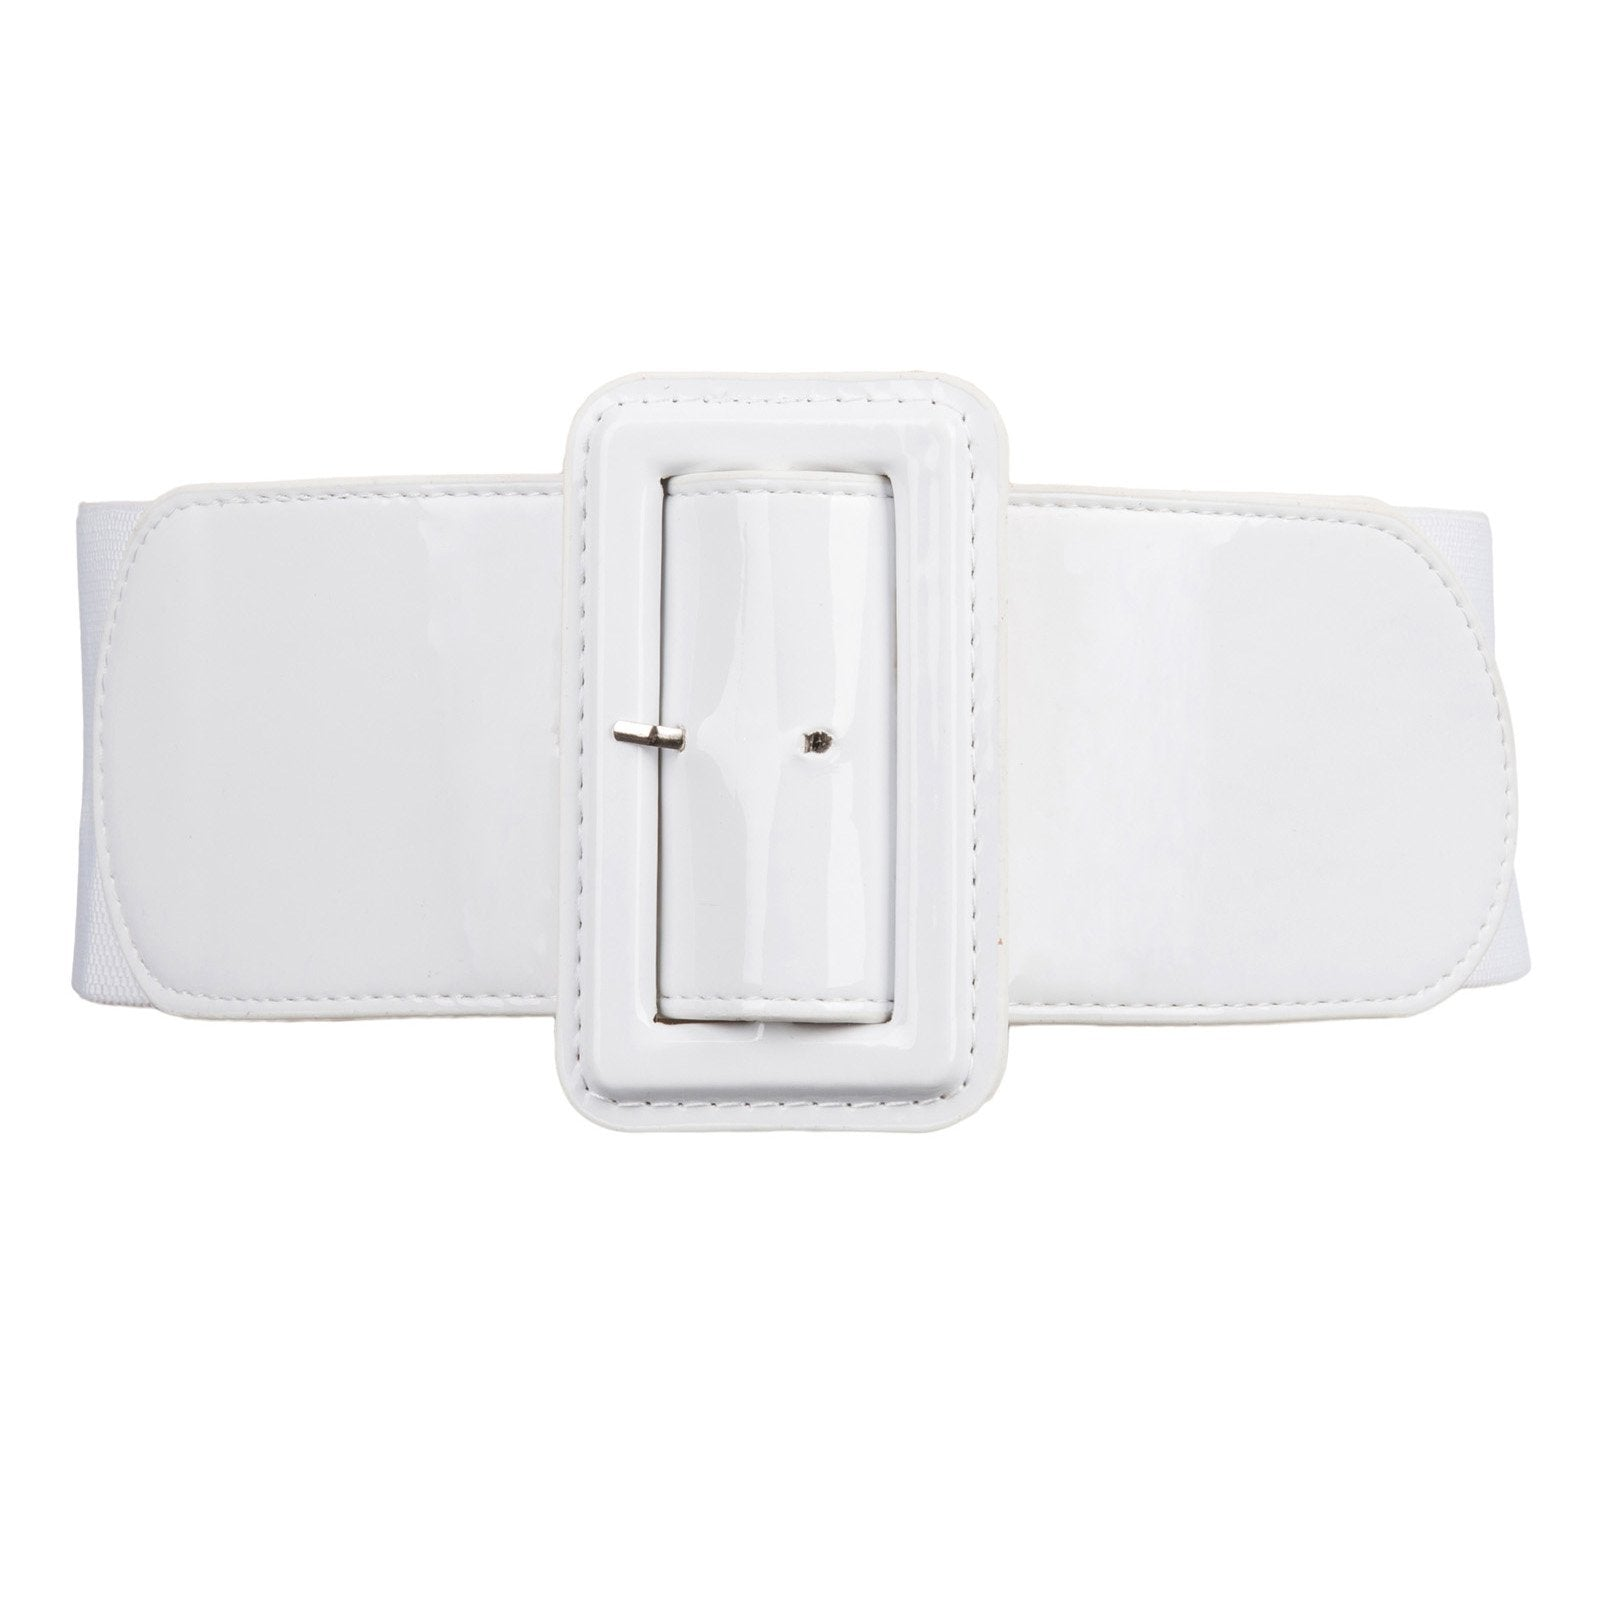 Brooklyn High Waist Belt - White